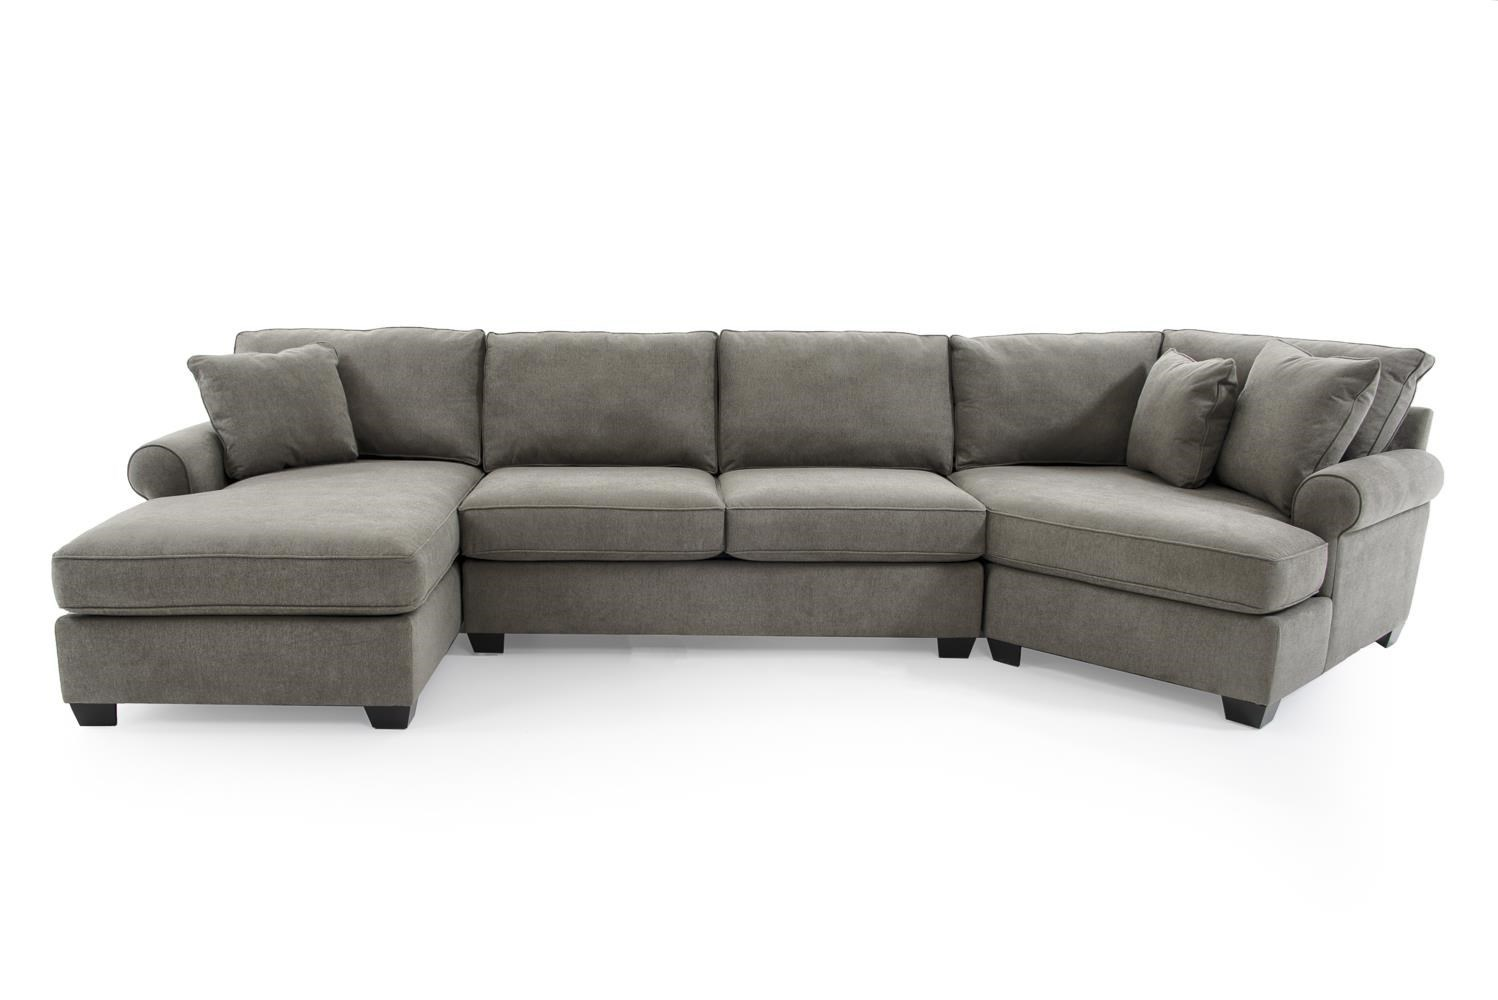 Delicieux Max Home Jessica3 Pc Sectional Sofa ...